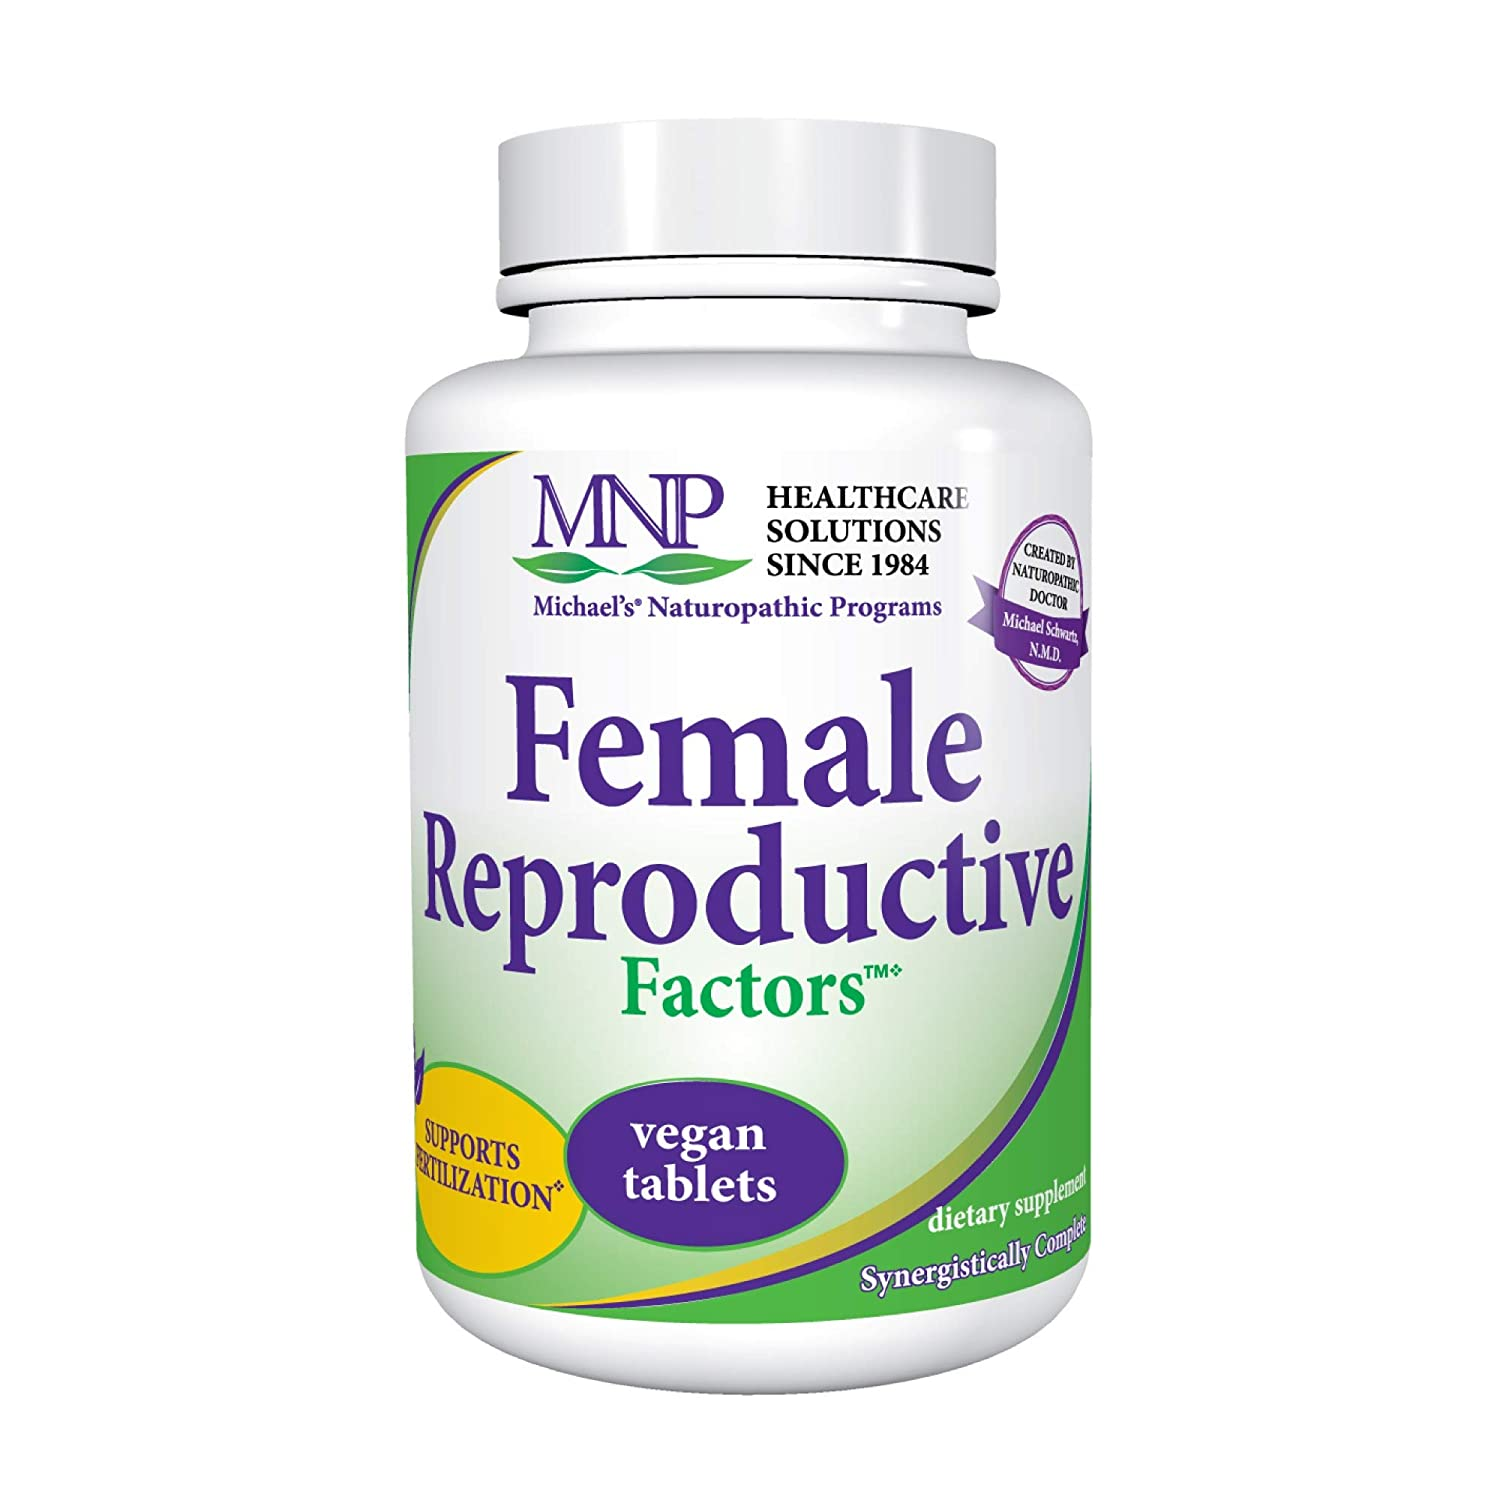 Michael\'s Naturopathic Programs Female Reproductive Factors - 60 Vegan  Tablets - Promotes Healthy Contraception & Pregnancy - Vegetarian, Gluten  Free, ...